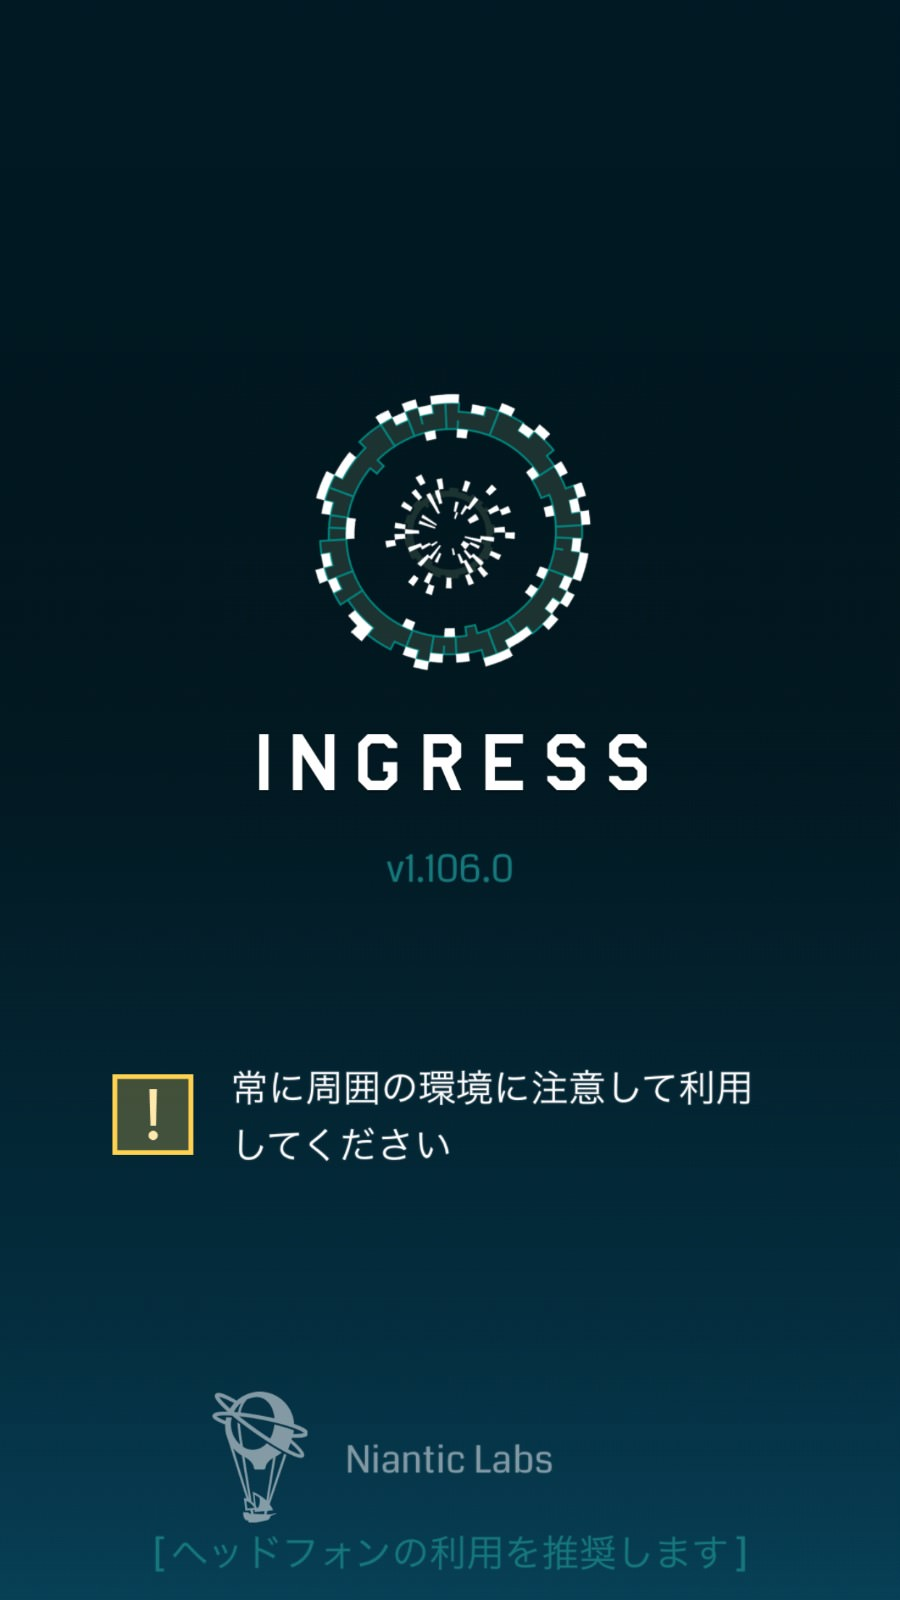 【Ingress】iOS版「Ingress 1.106.0」リリース